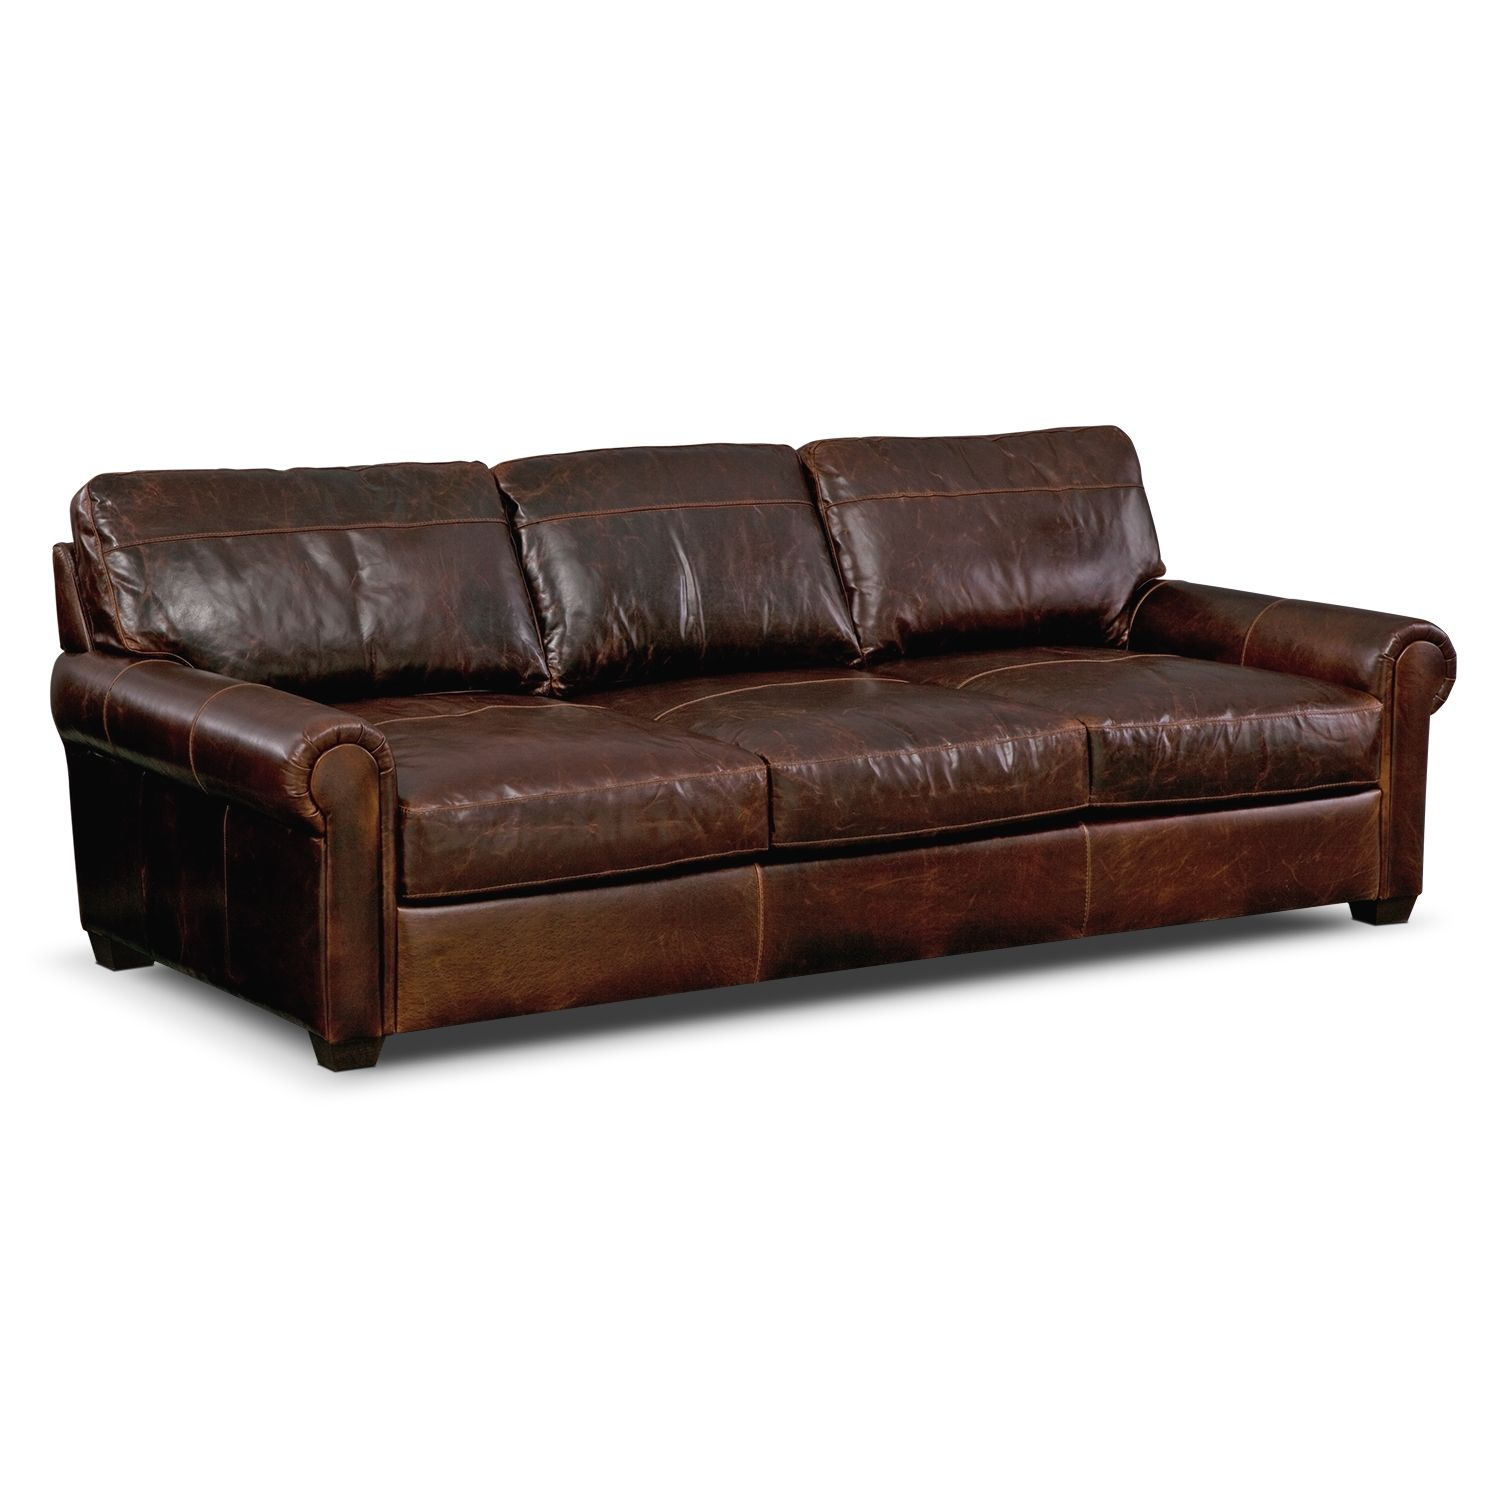 Burnham Leather Sofa Value City Furniture Knock Off Restoration Hardware